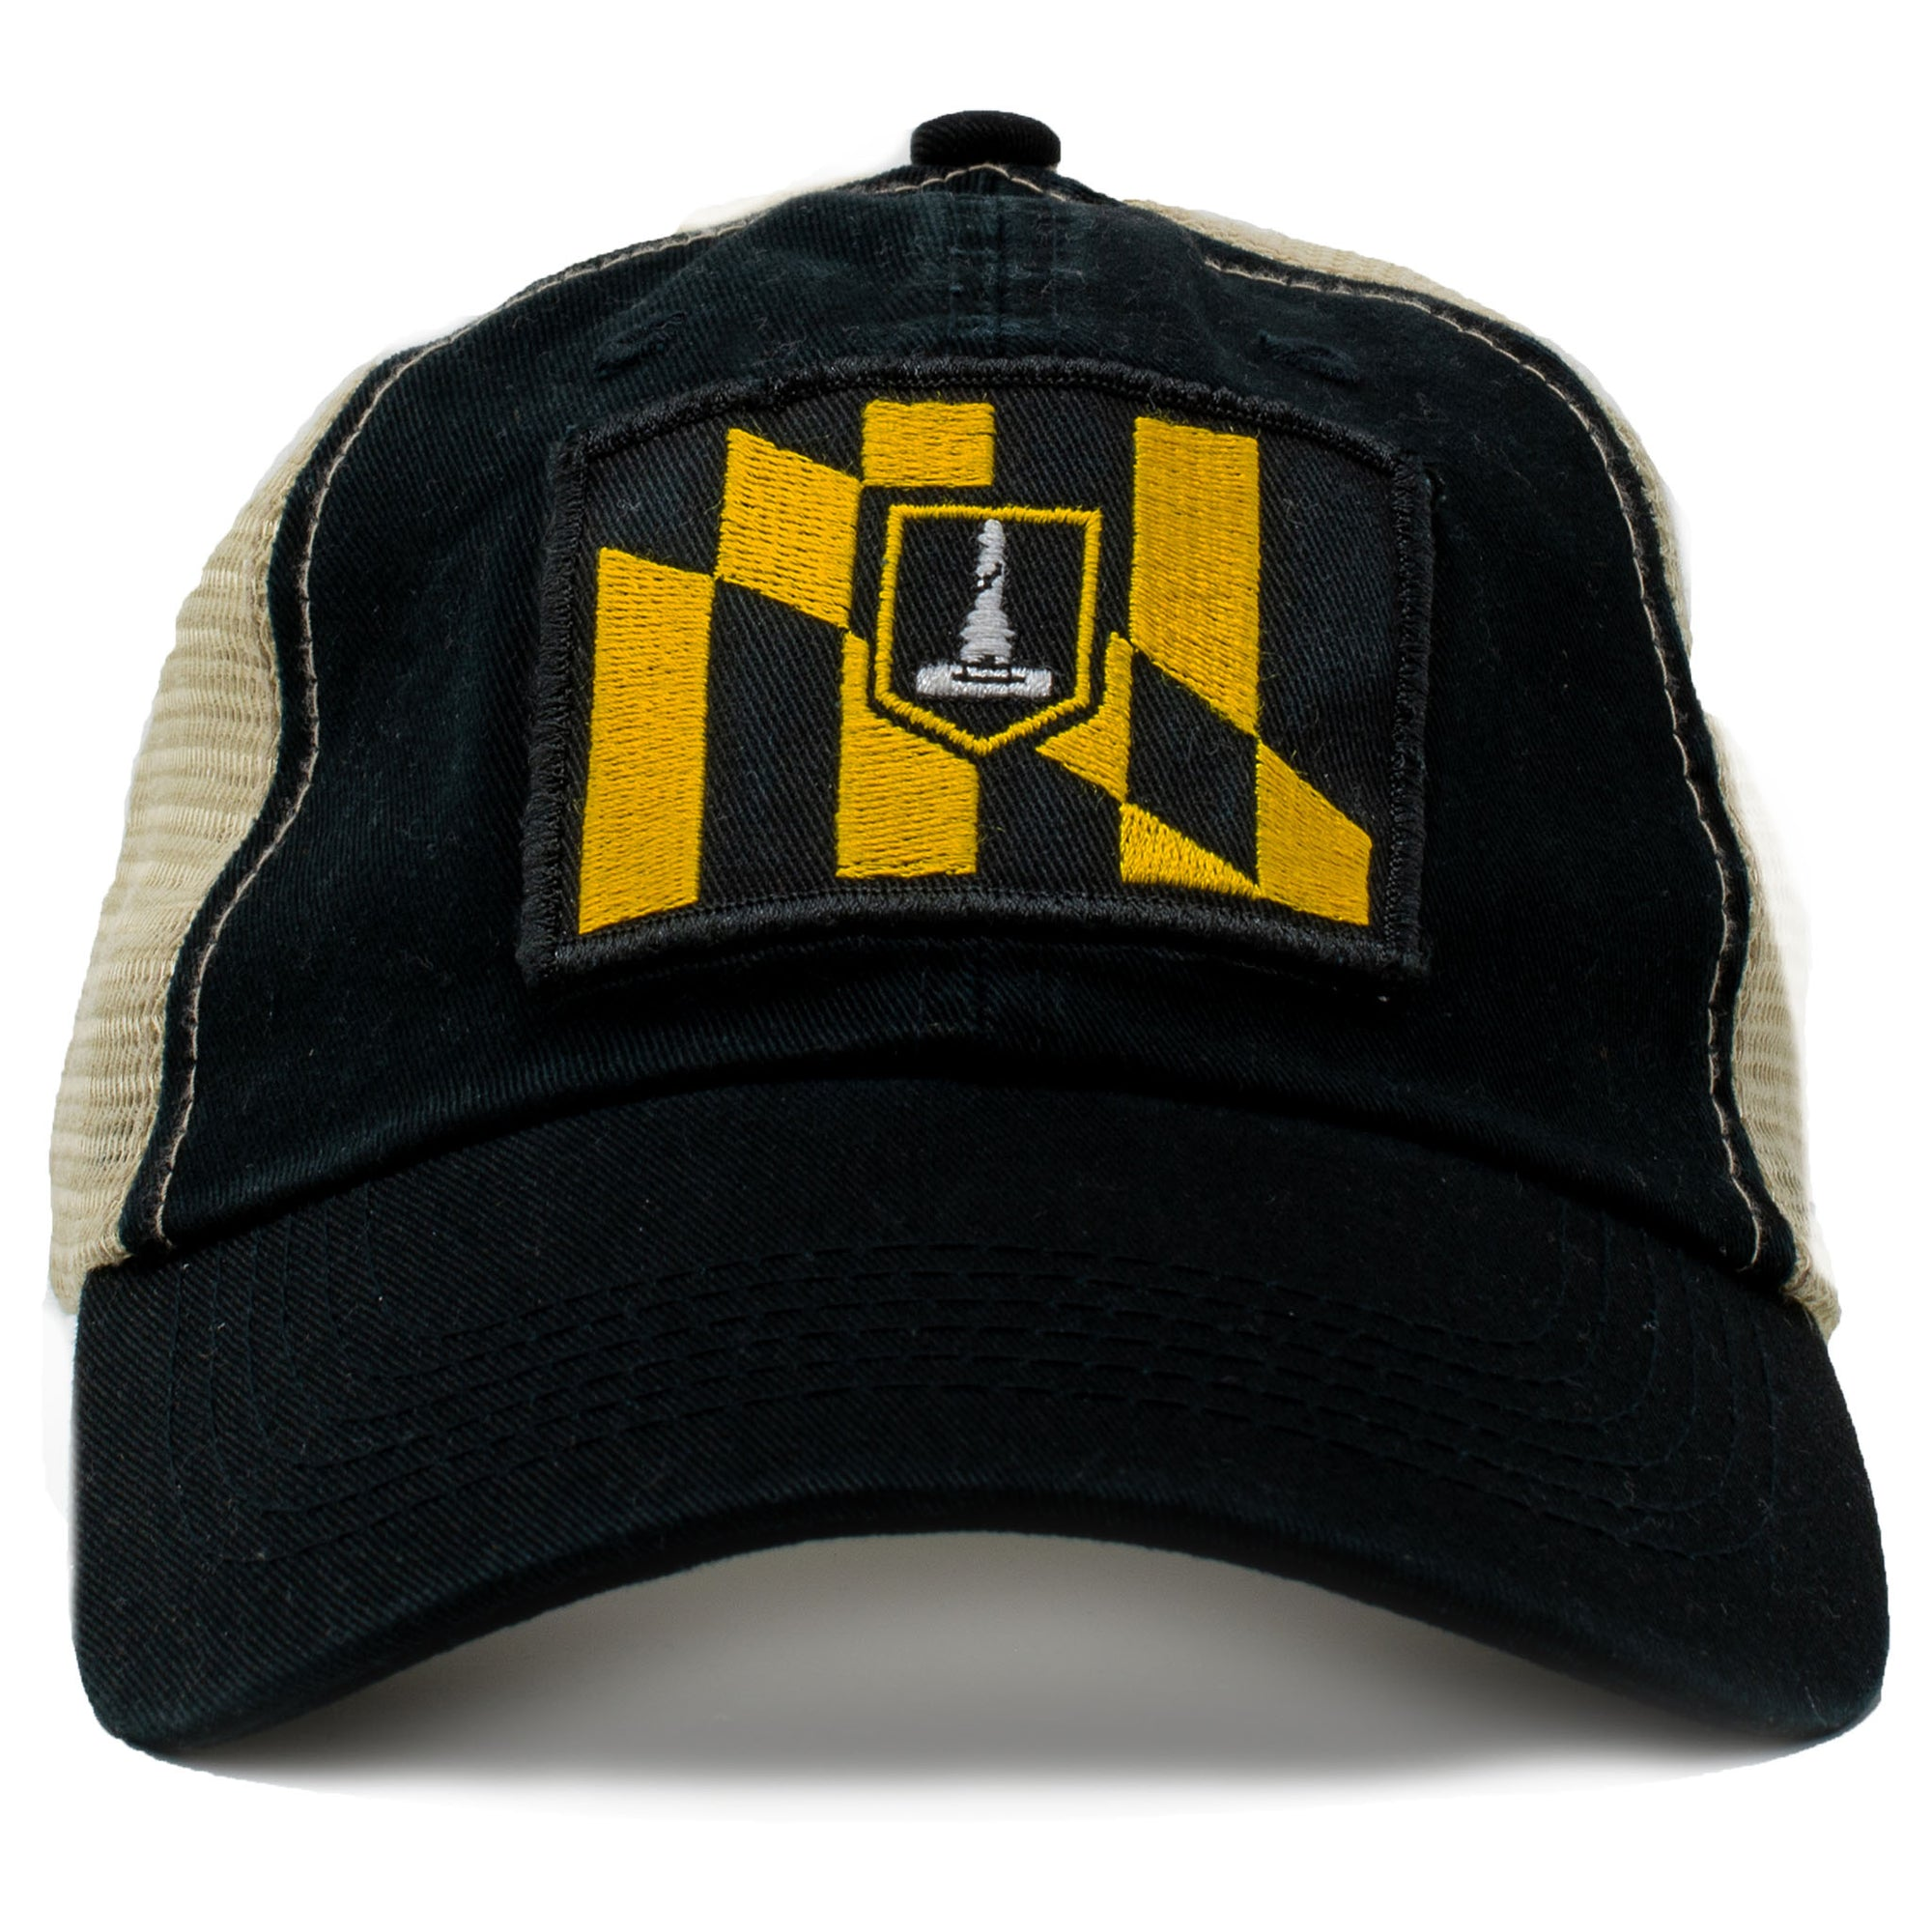 Baltimore Maryland city flag trucker hat